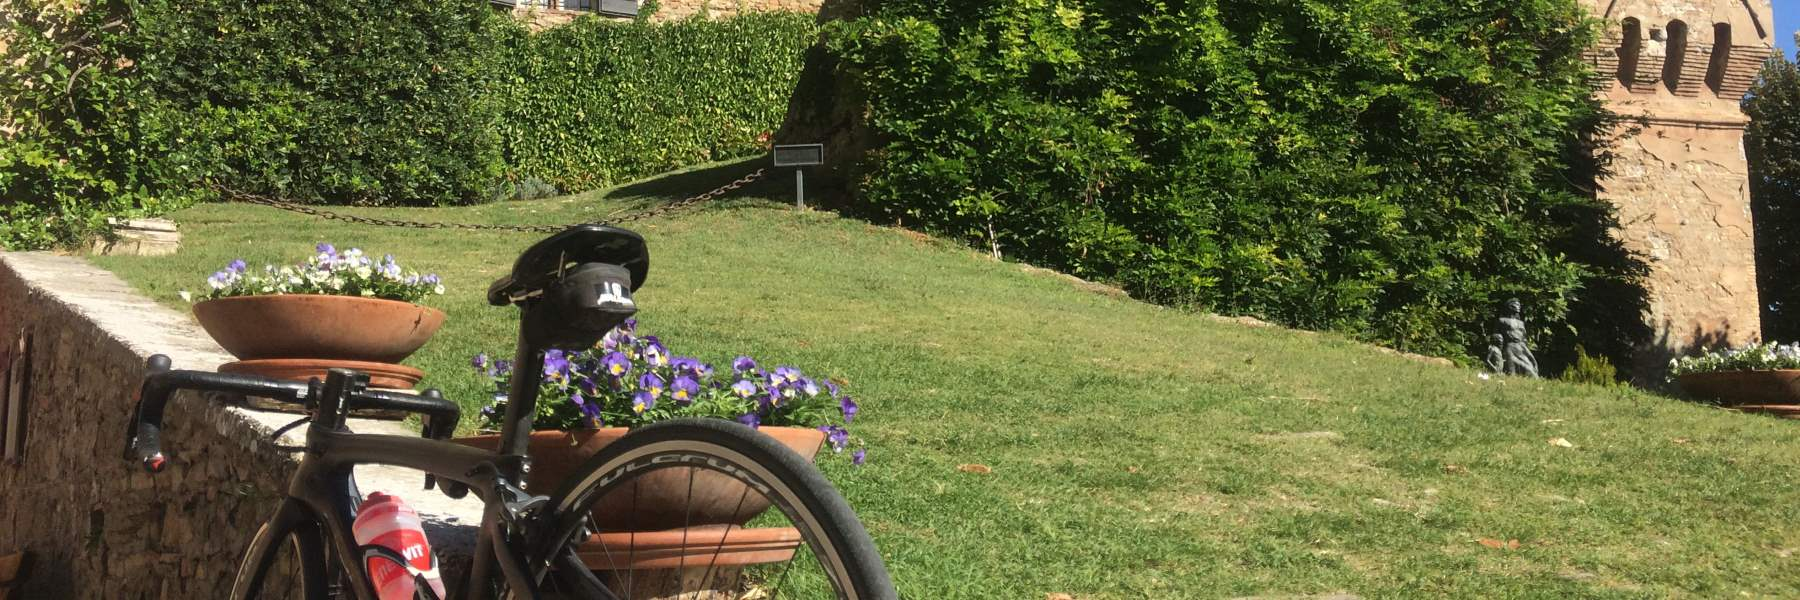 Malatesta Tour, in bici tra i castelli di Romagna